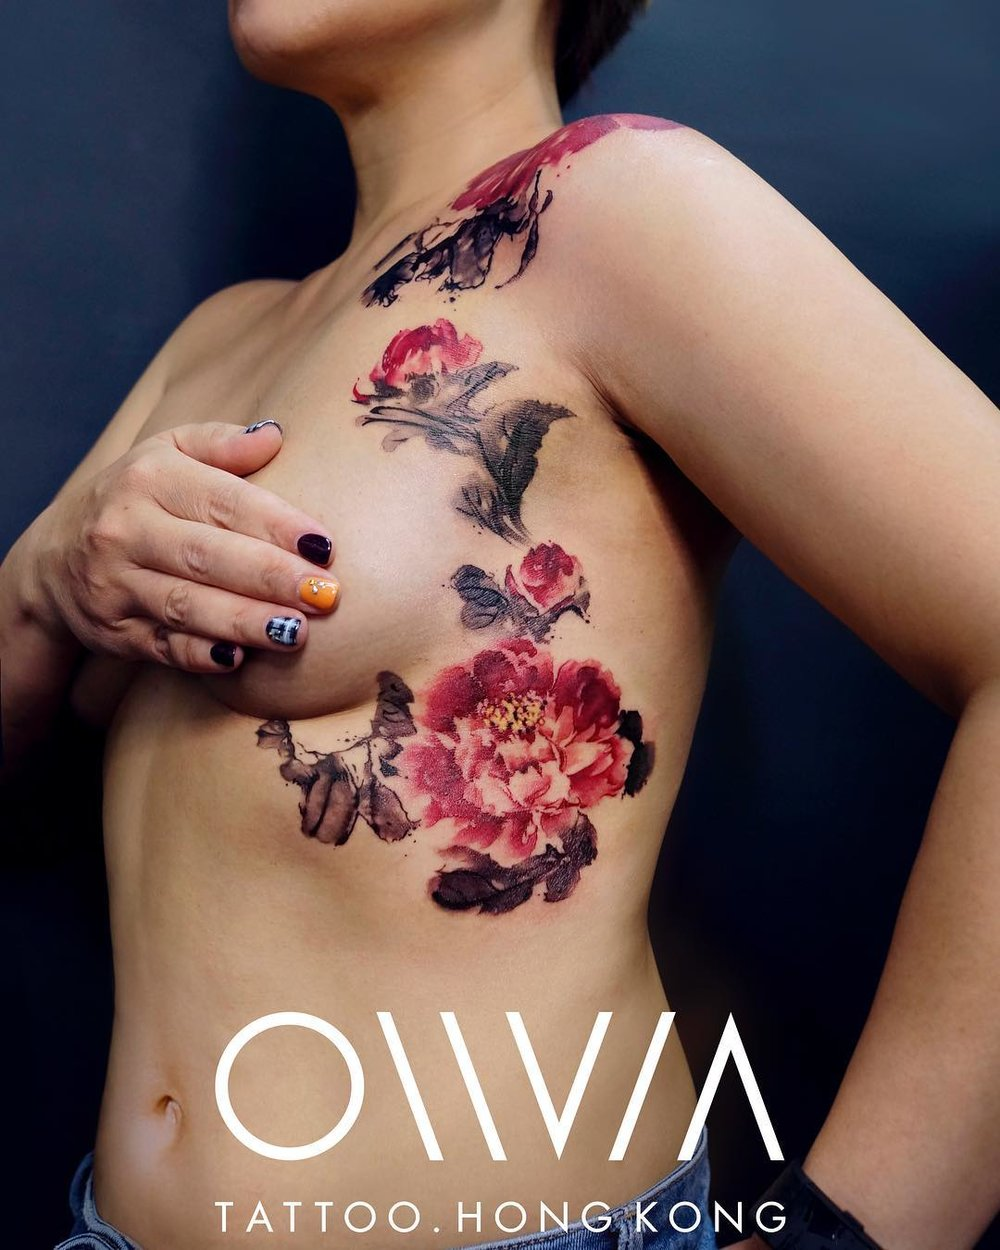 2018-fridays-tattoo-hong-kong-olivia-chinese-brush-floral.jpg